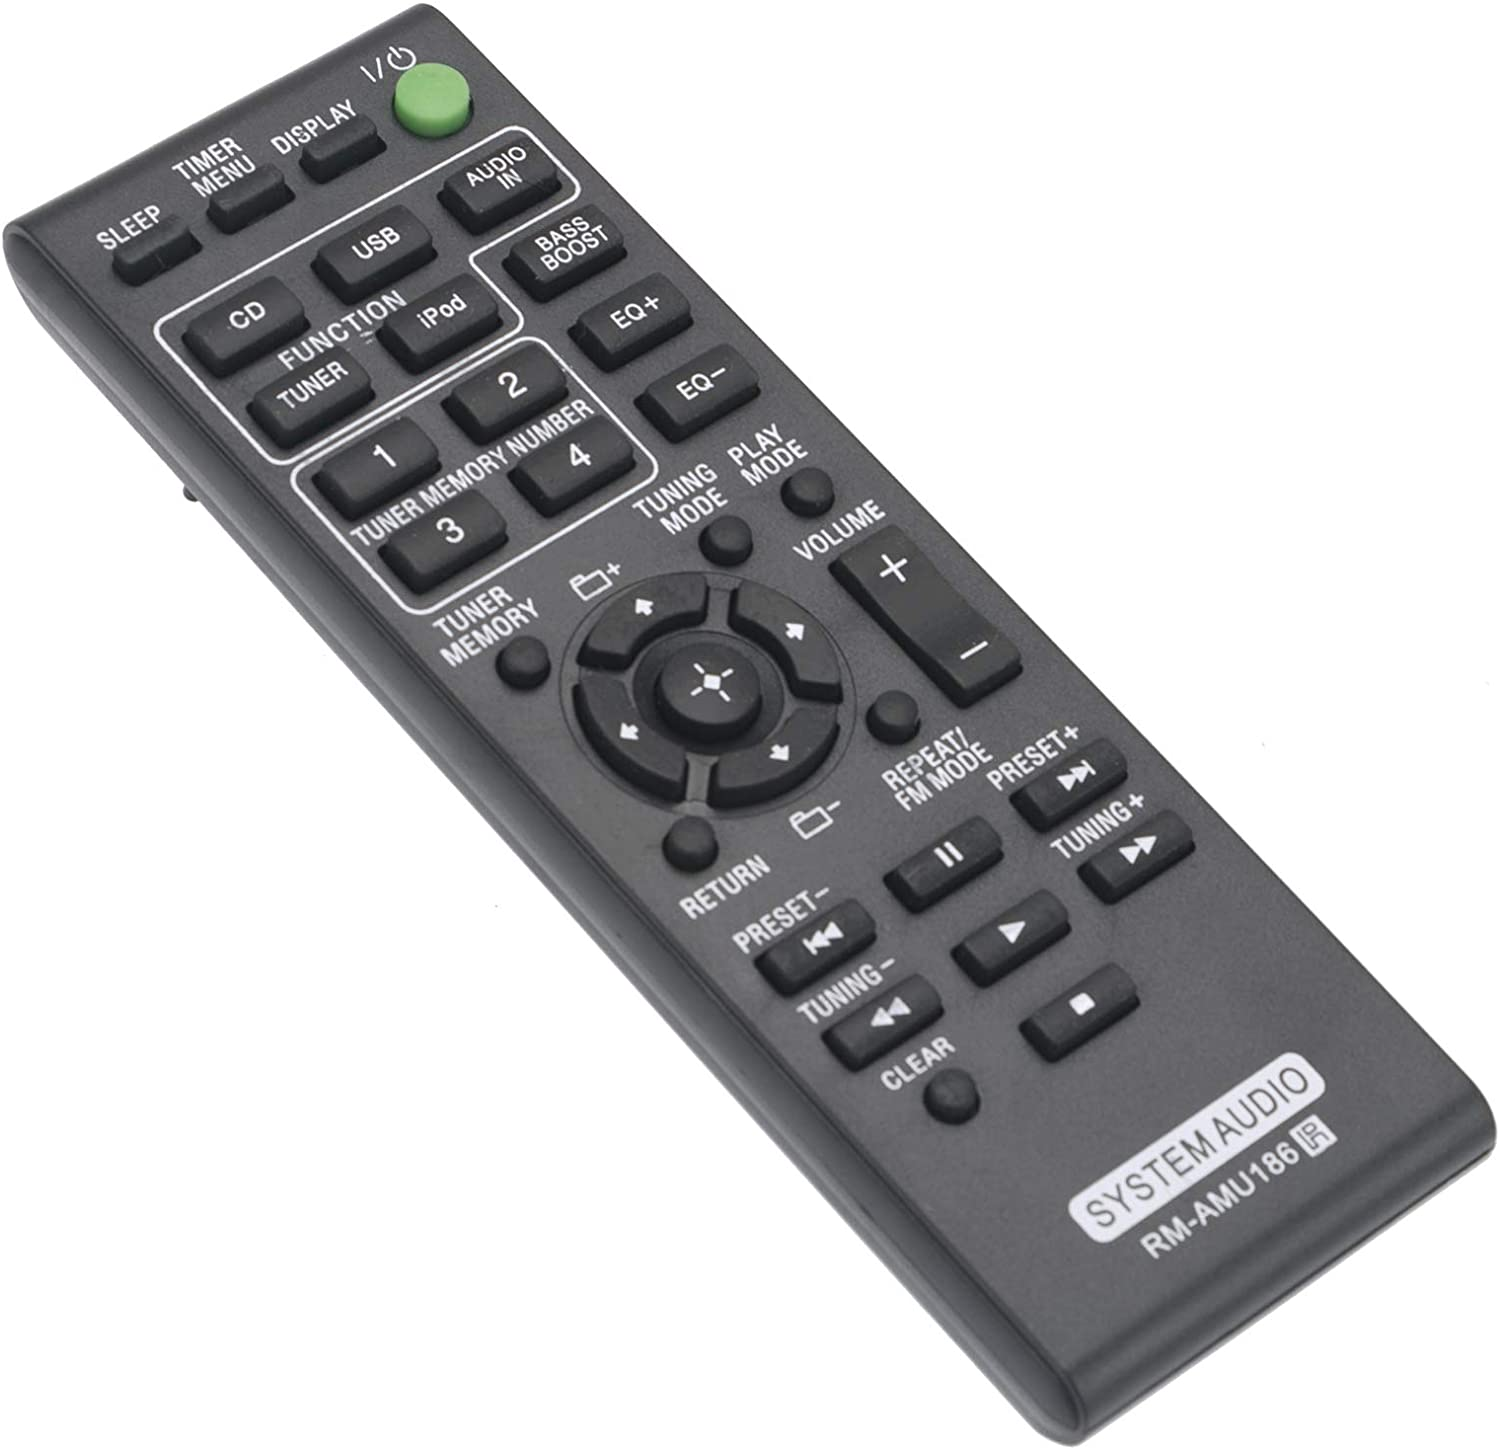 New RM-AMU186 Replacement Remote Control RMAMU186 fit for Sony Music Audio Stereo System MHC-EC719iP MHC-EC919iP MHC-EC619iP HCD-EC719iP HCD-EC919iP MHCEC719iP MHCEC919iP MHCEC619iP HCDEC719iP